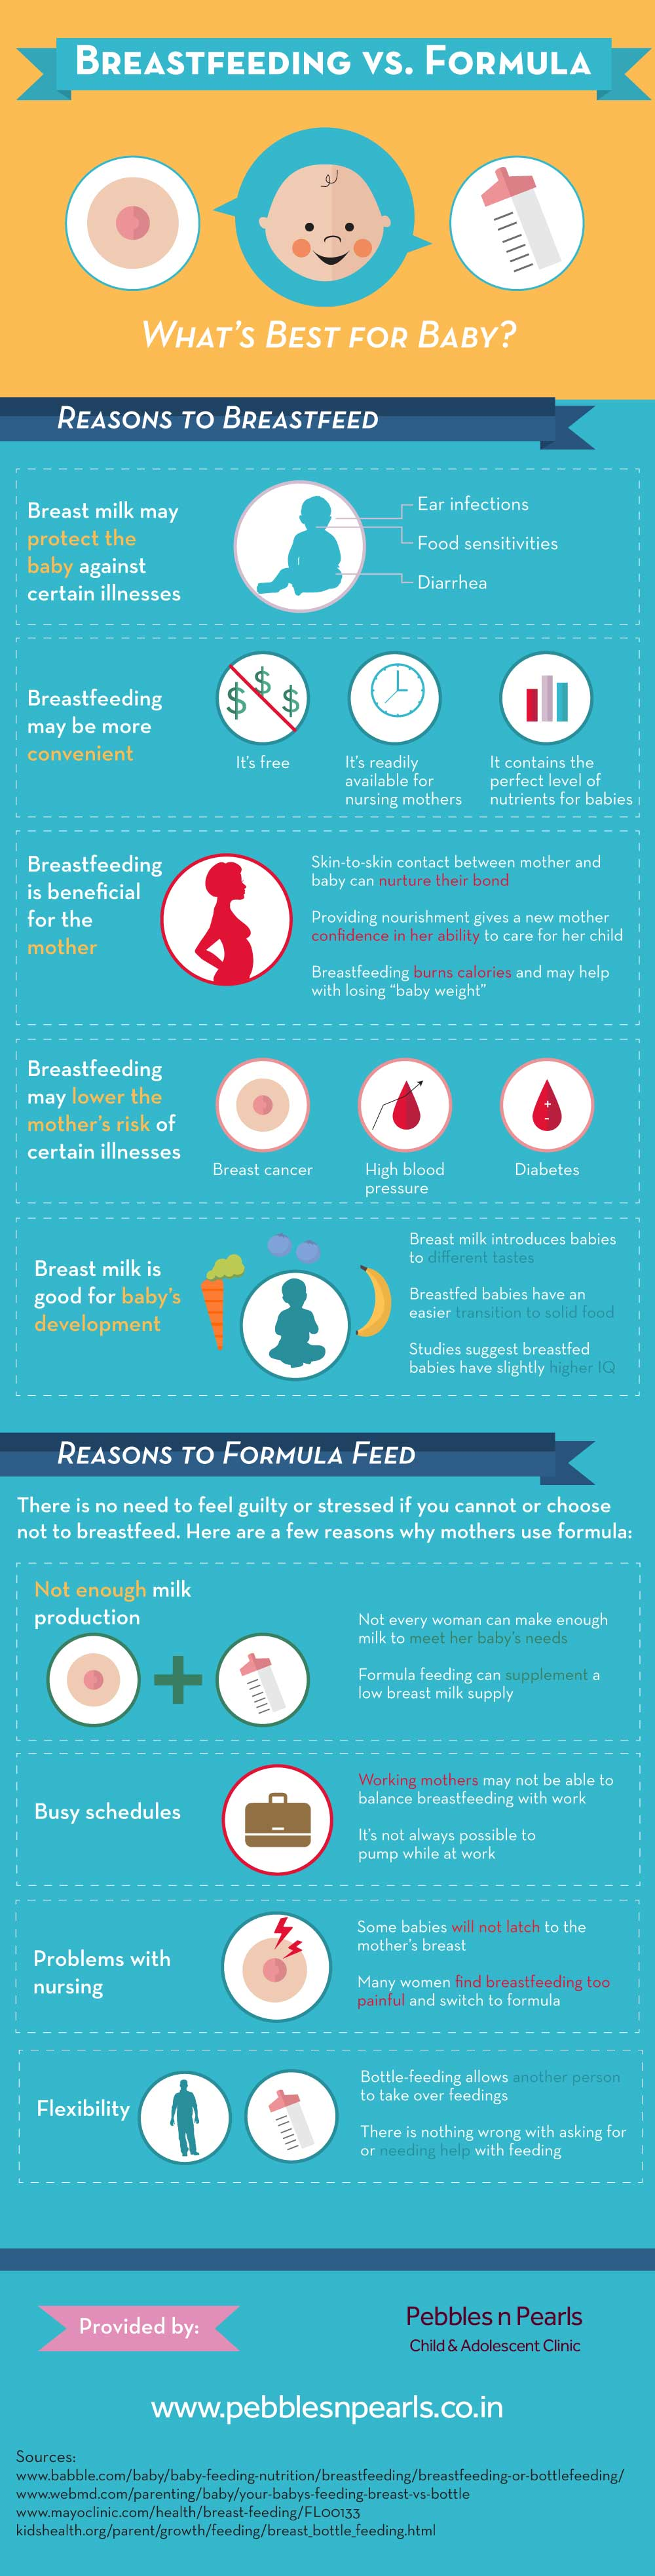 Breastfeeding vs Formula